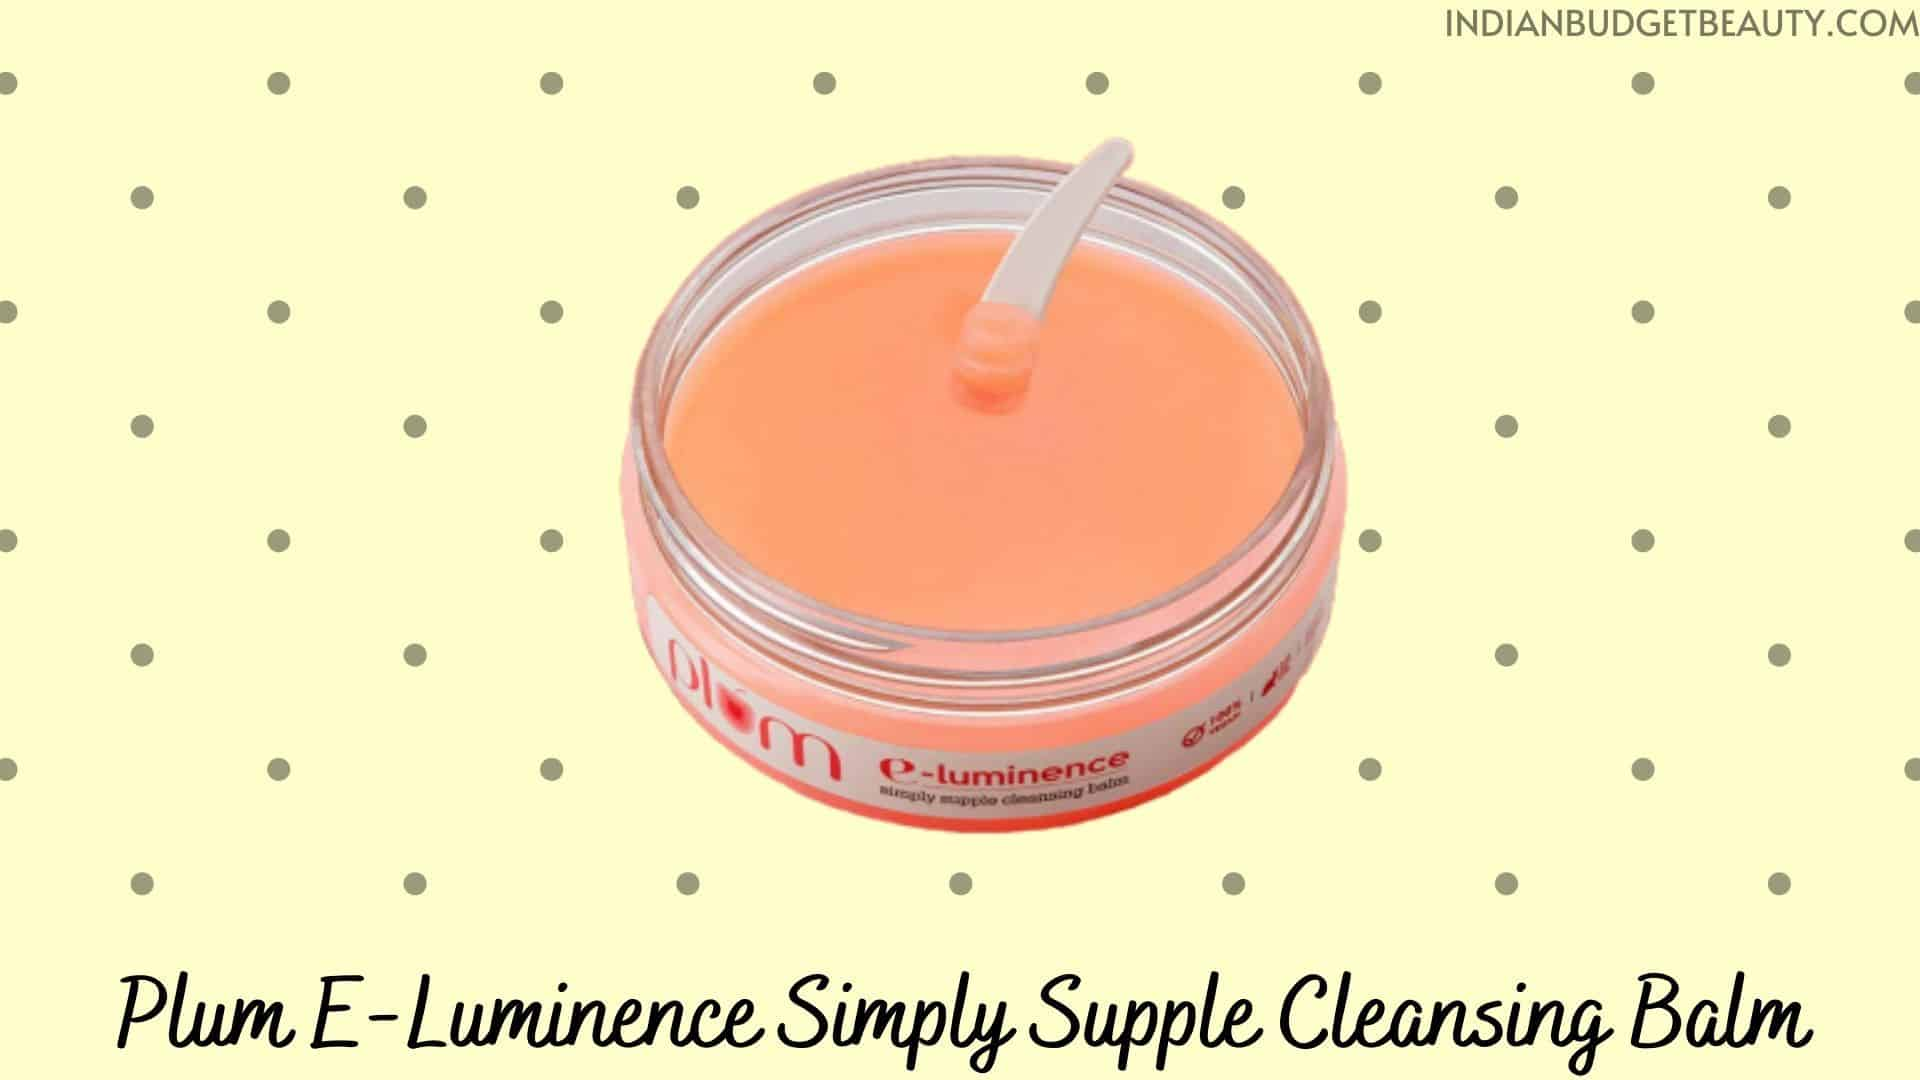 Plum E-Luminence Simply Supple Cleansing Balm review | best cleansing balm in india